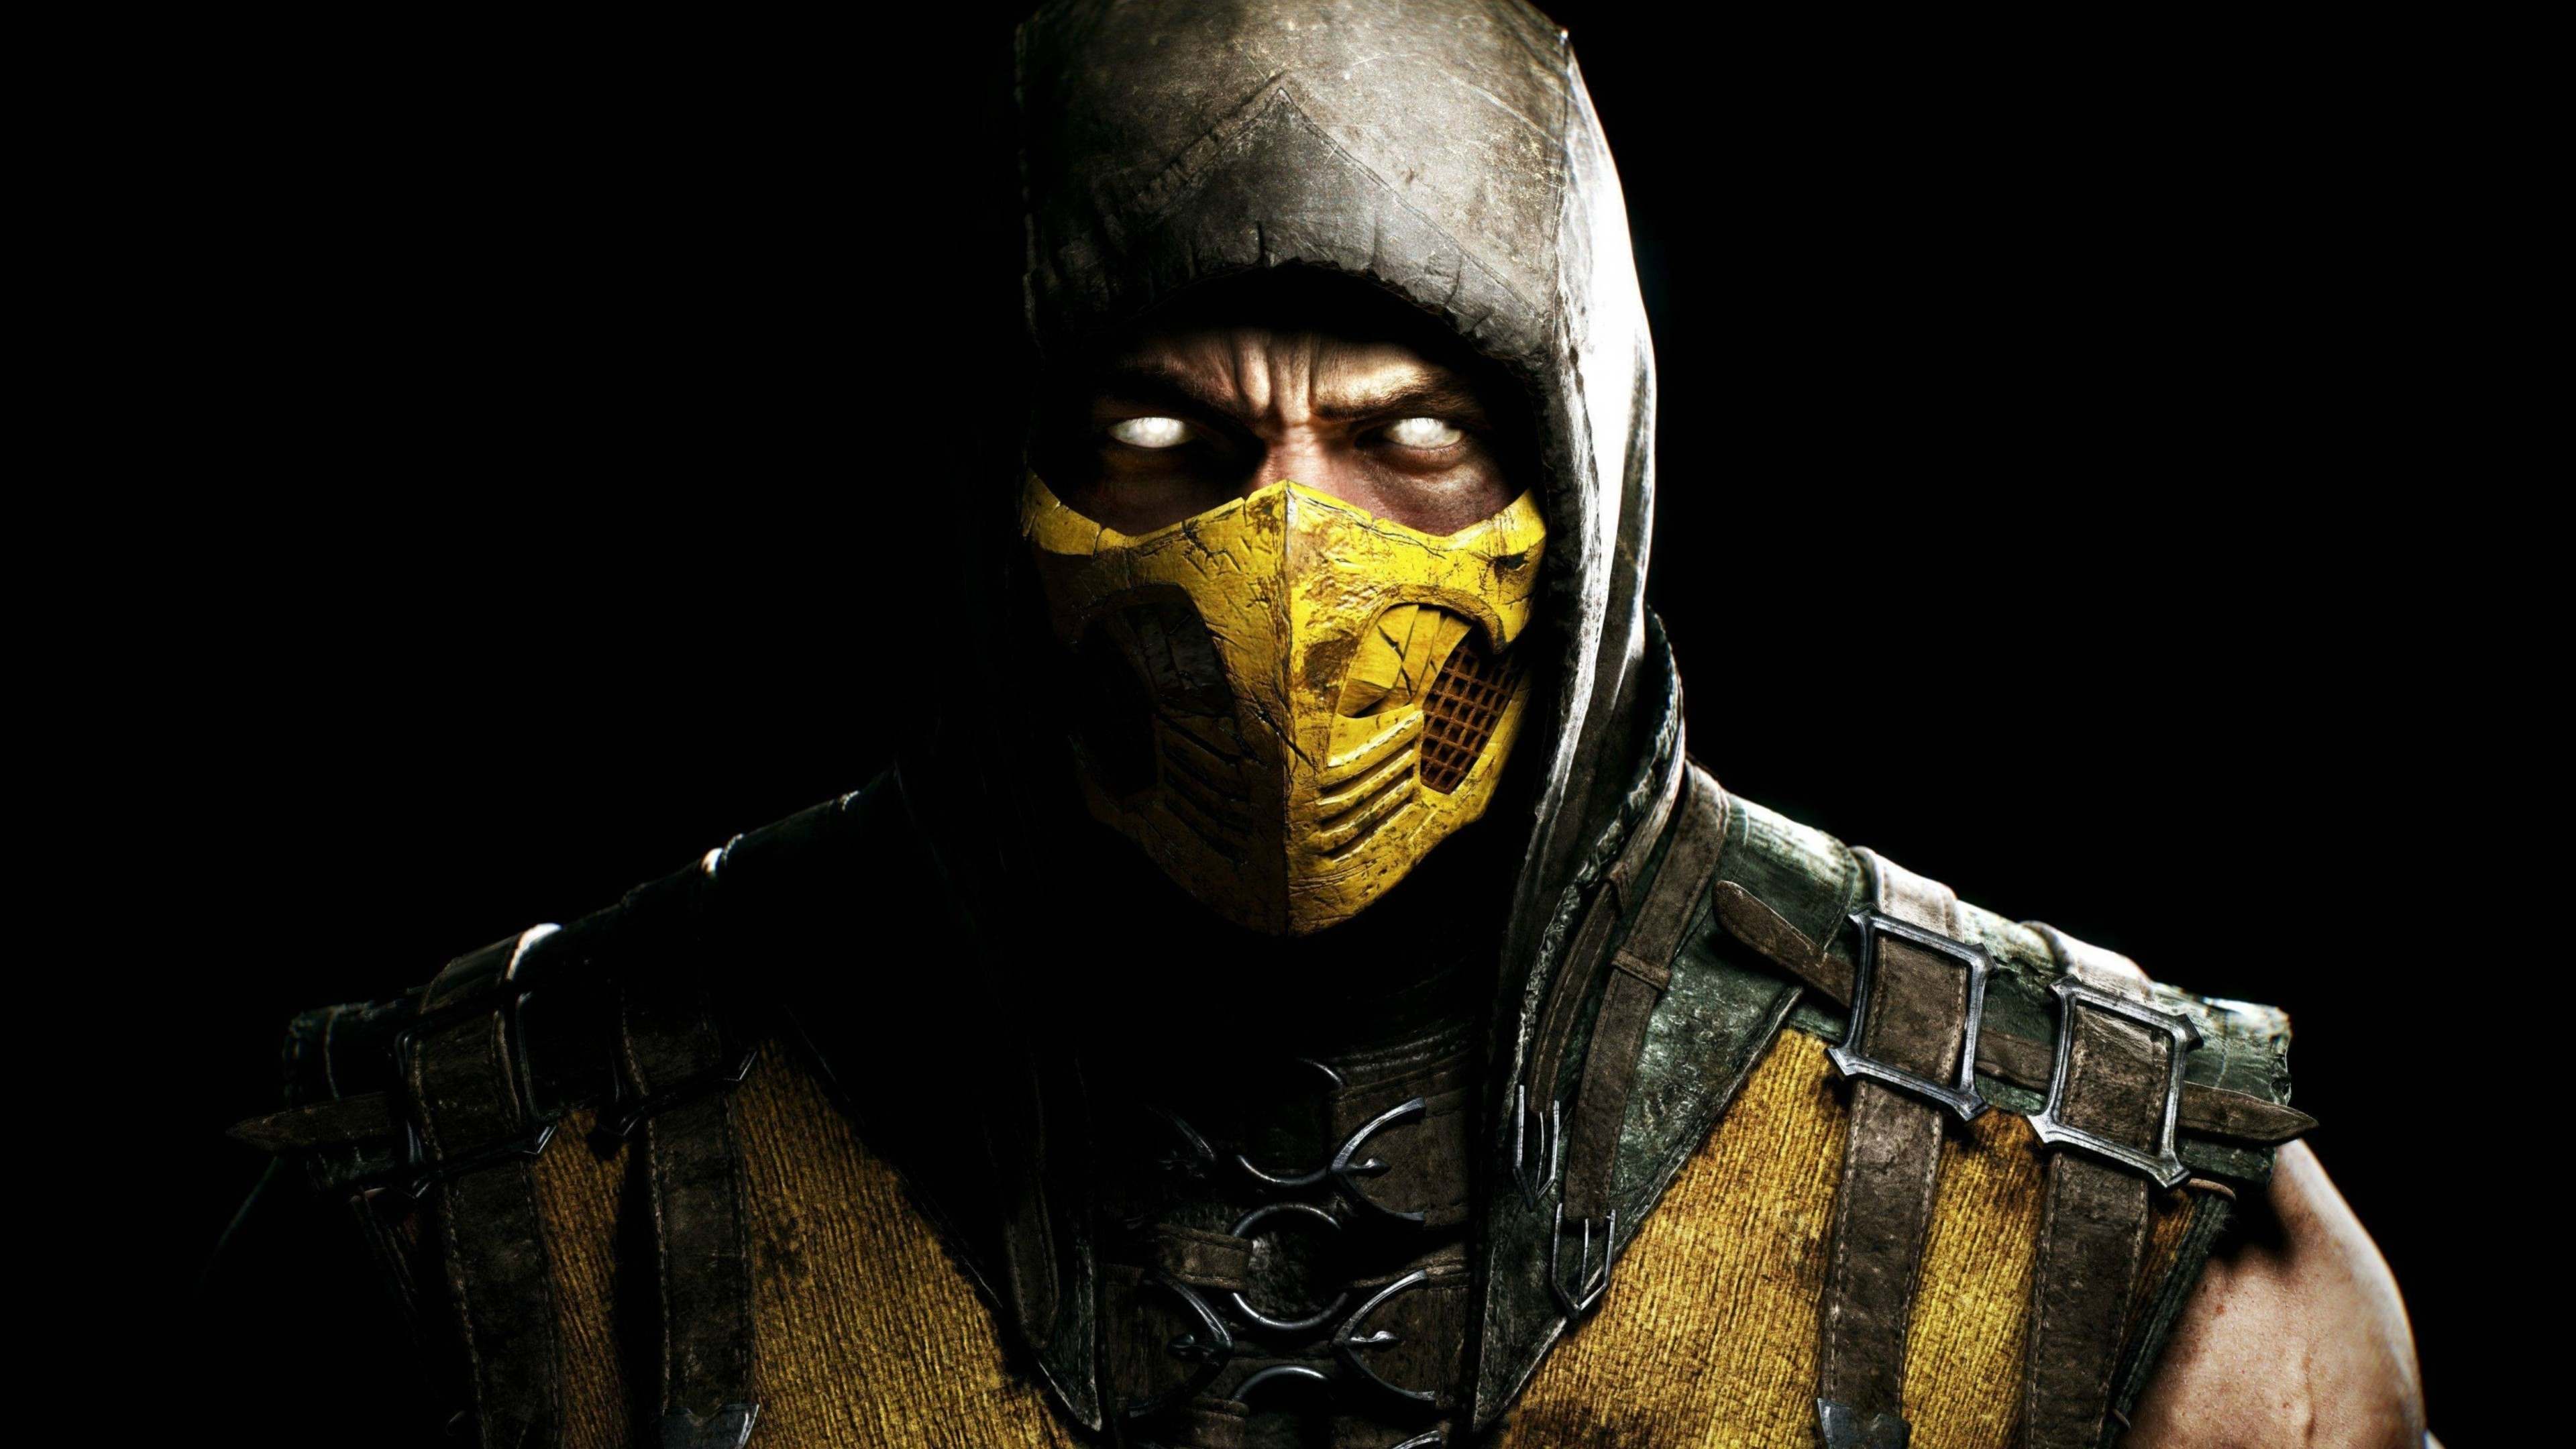 scorpion in mortal kombat 1535967065 - Scorpion In Mortal Kombat - xbox games wallpapers, scorpion wallpapers, ps games wallpapers, pc games wallpapers, mortal kombat wallpapers, games wallpapers